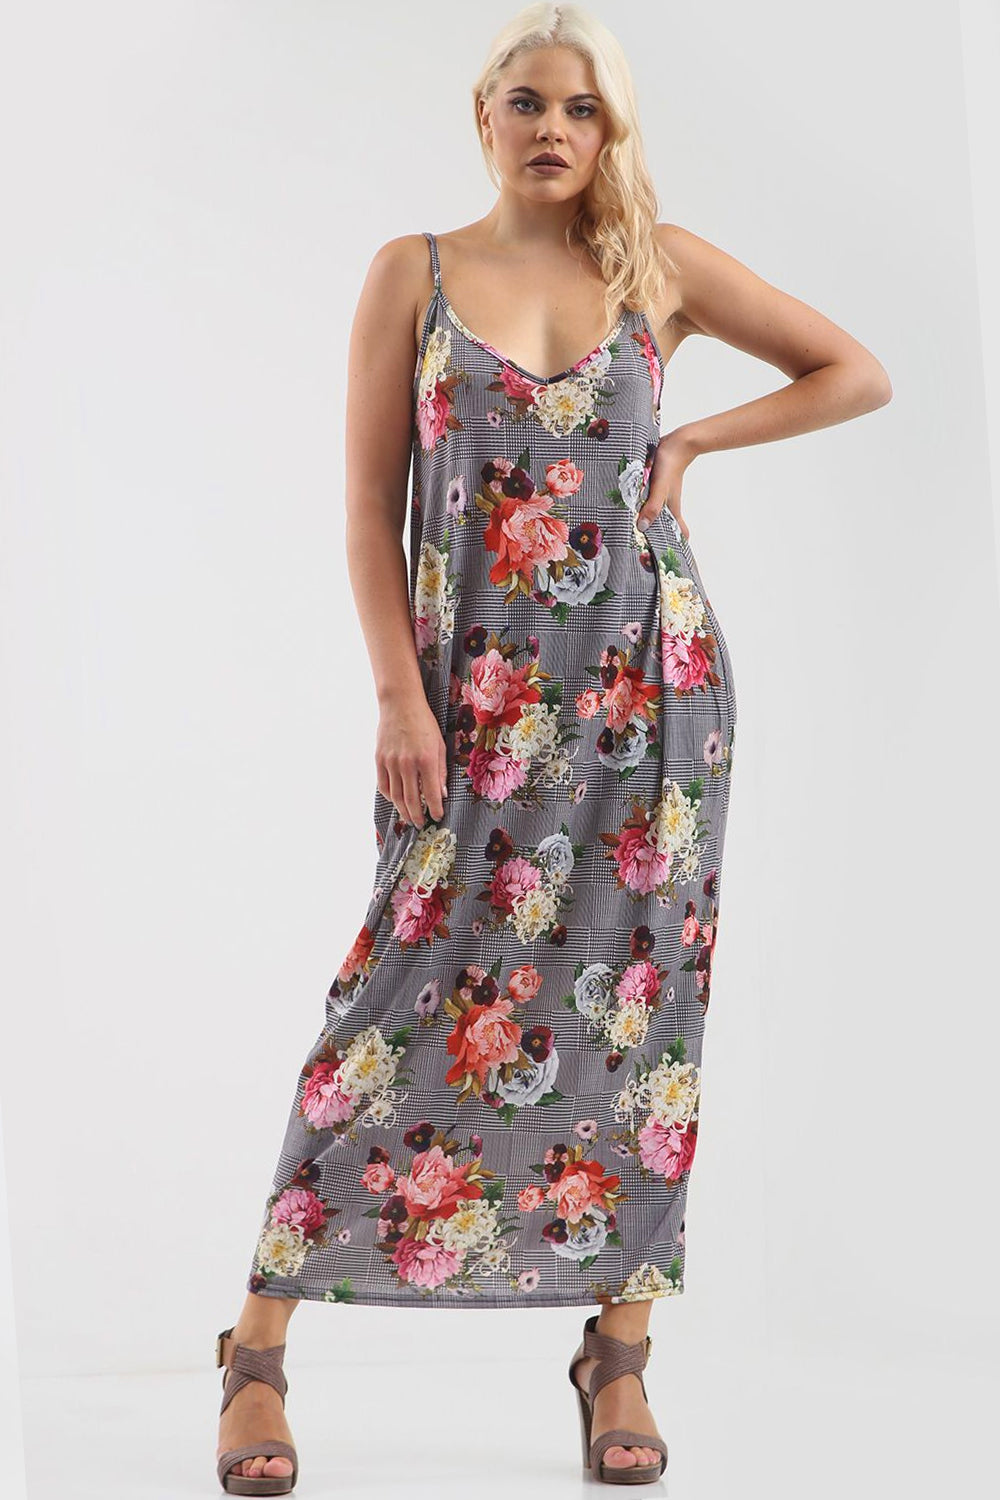 Strappy Loose Fit Floral Gingham Maxi Dress - bejealous-com